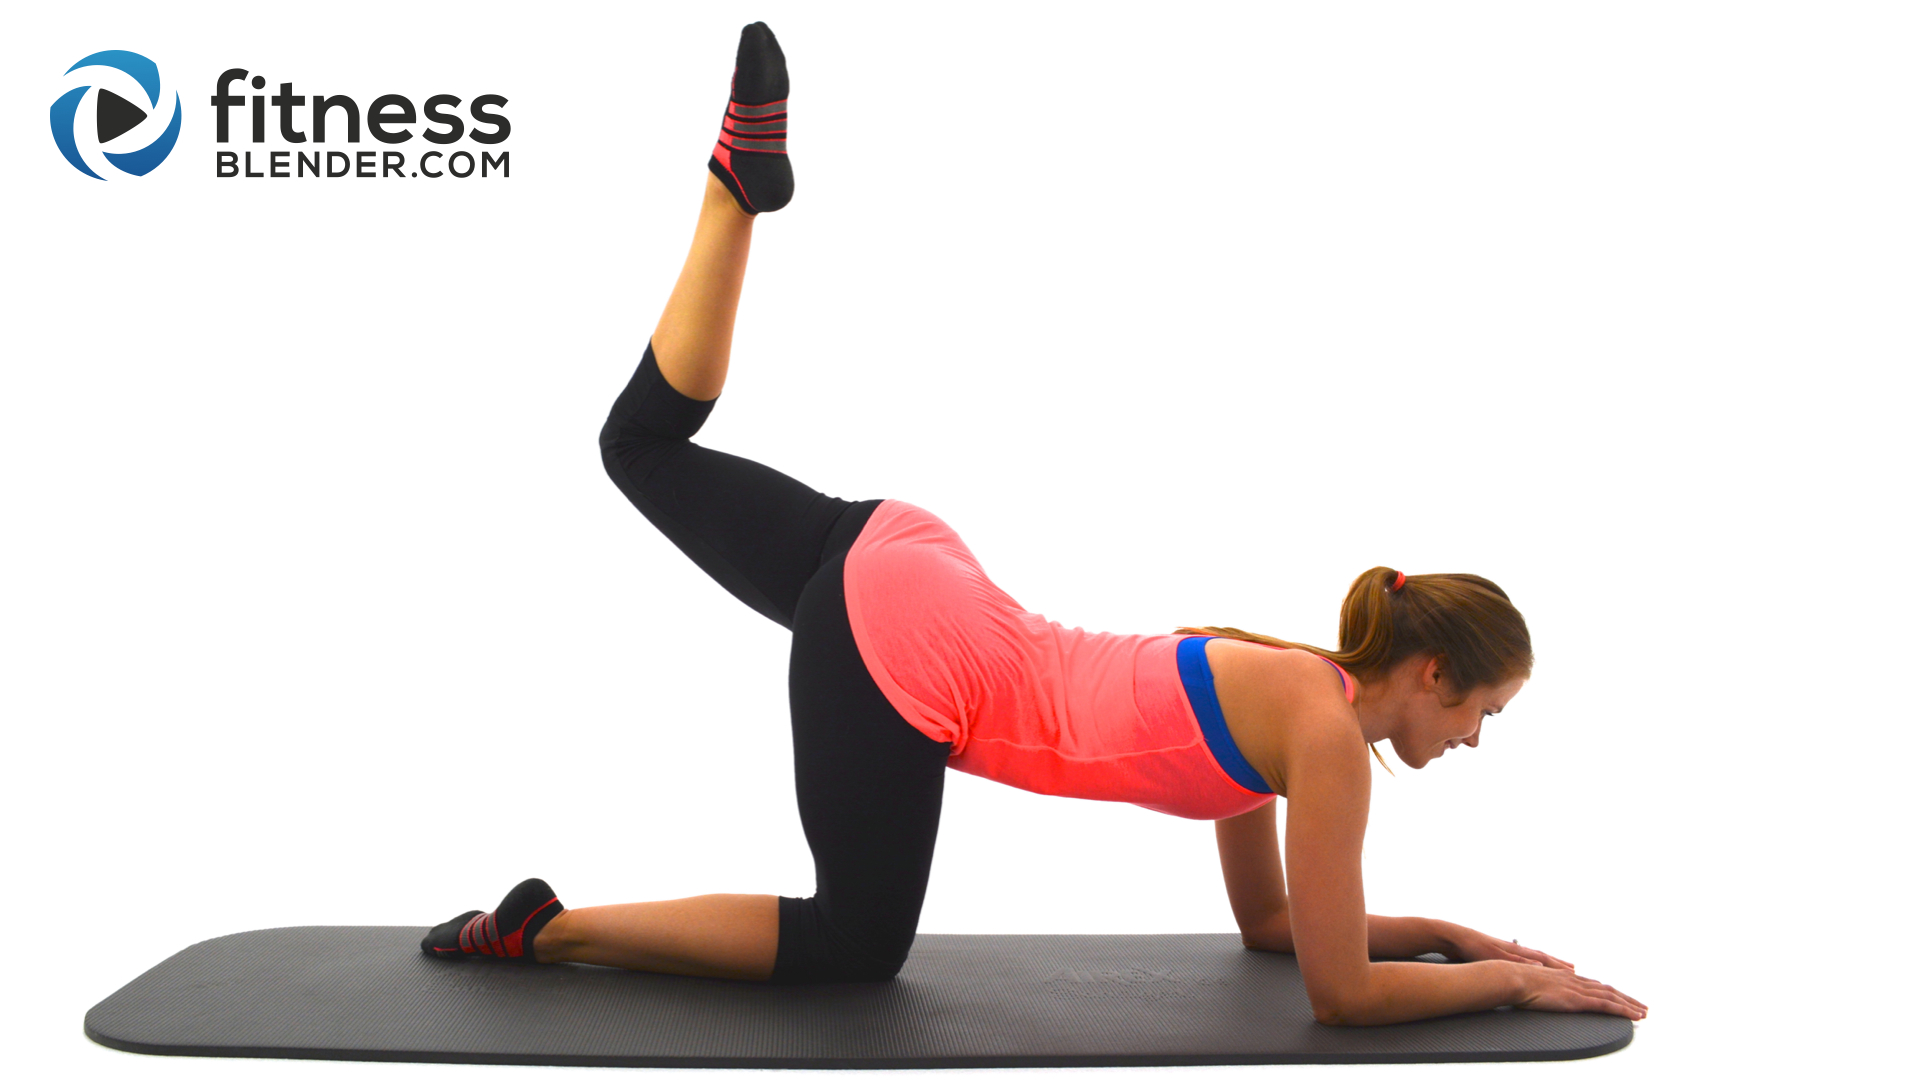 Leg Slimming Pilates And Thigh Workout To Lift Glutes Tone Thighs Fitness Blender